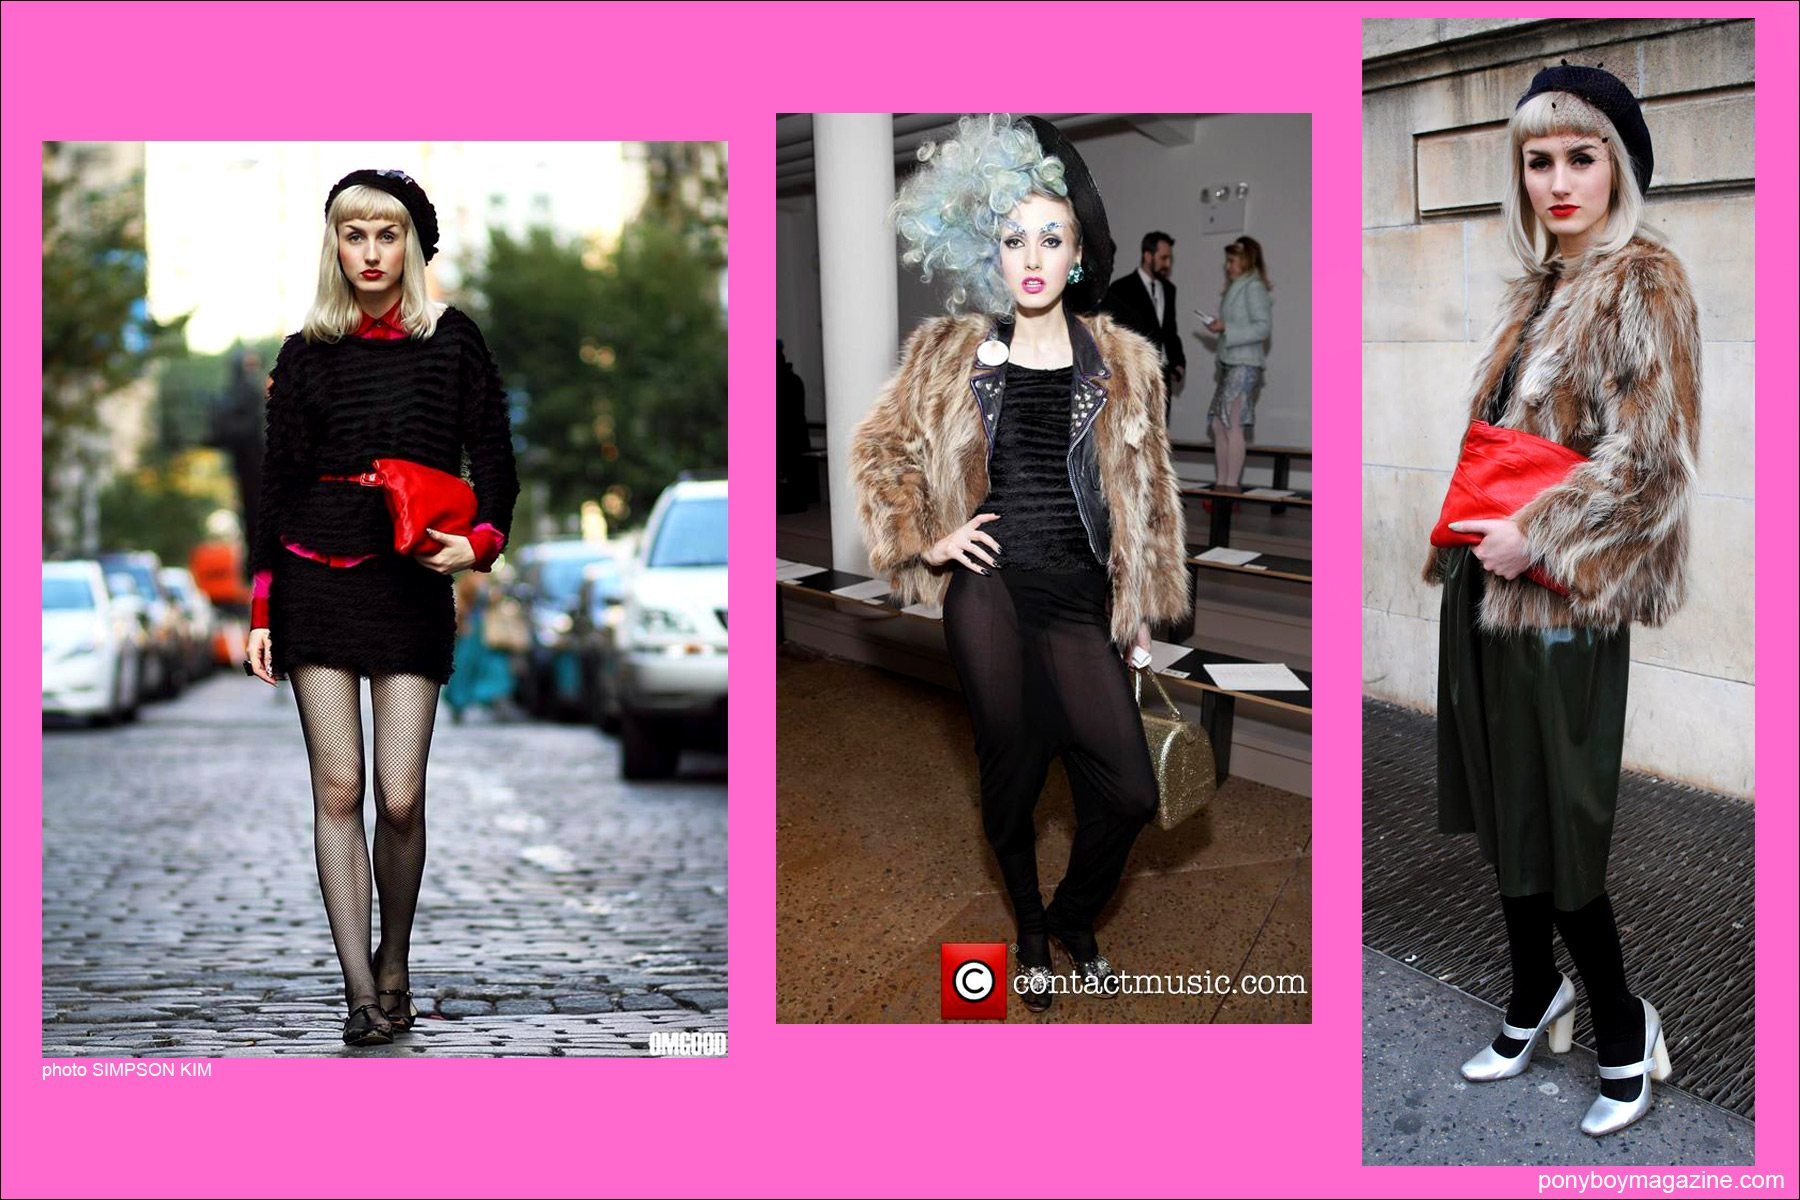 Street style shots of model/designer Stella Rose Saint Clair in New York City for Ponyboy Magazine.